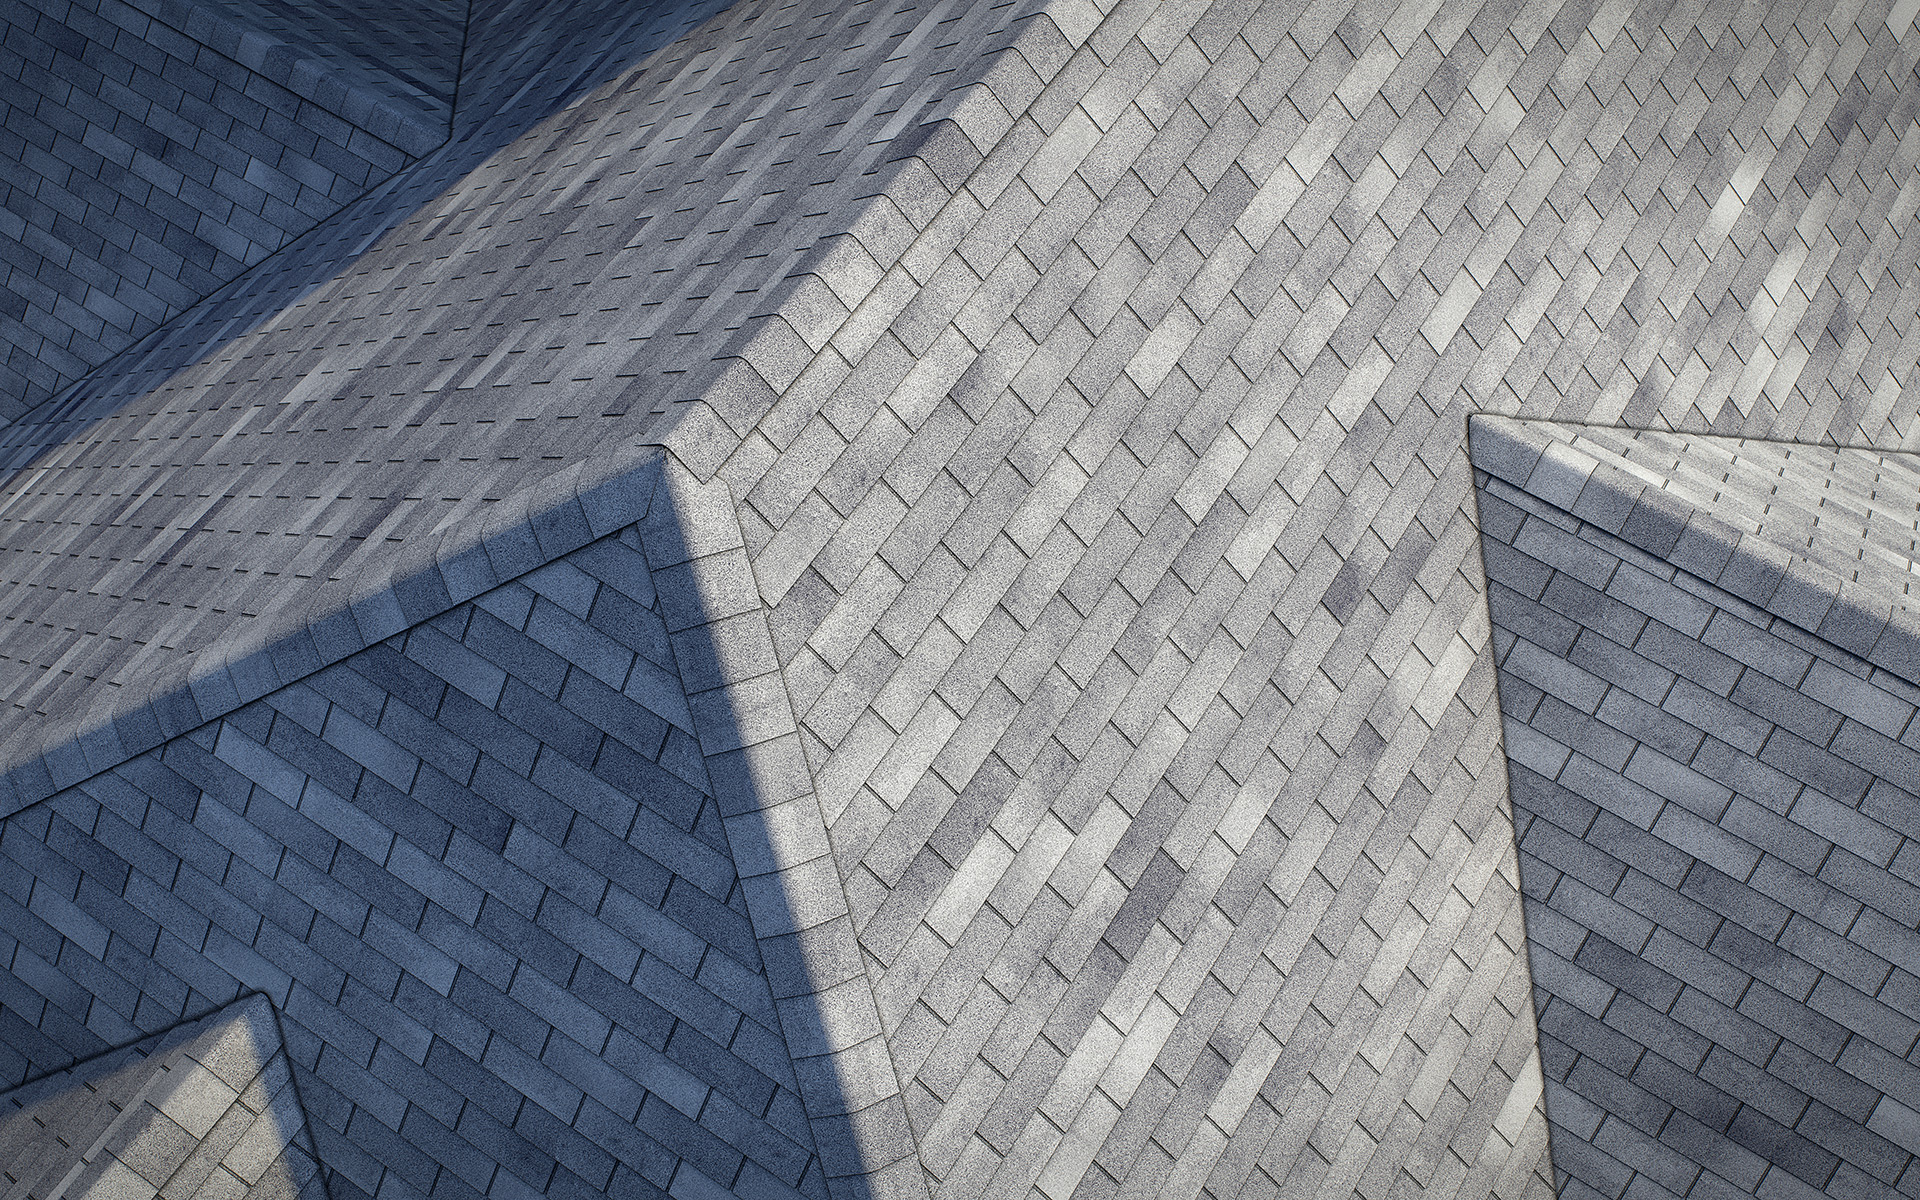 3-tab asphalt roof shingles grey color 3D model preset for 3dsmax and RailClone. Rendered with vray, made for arch-viz.